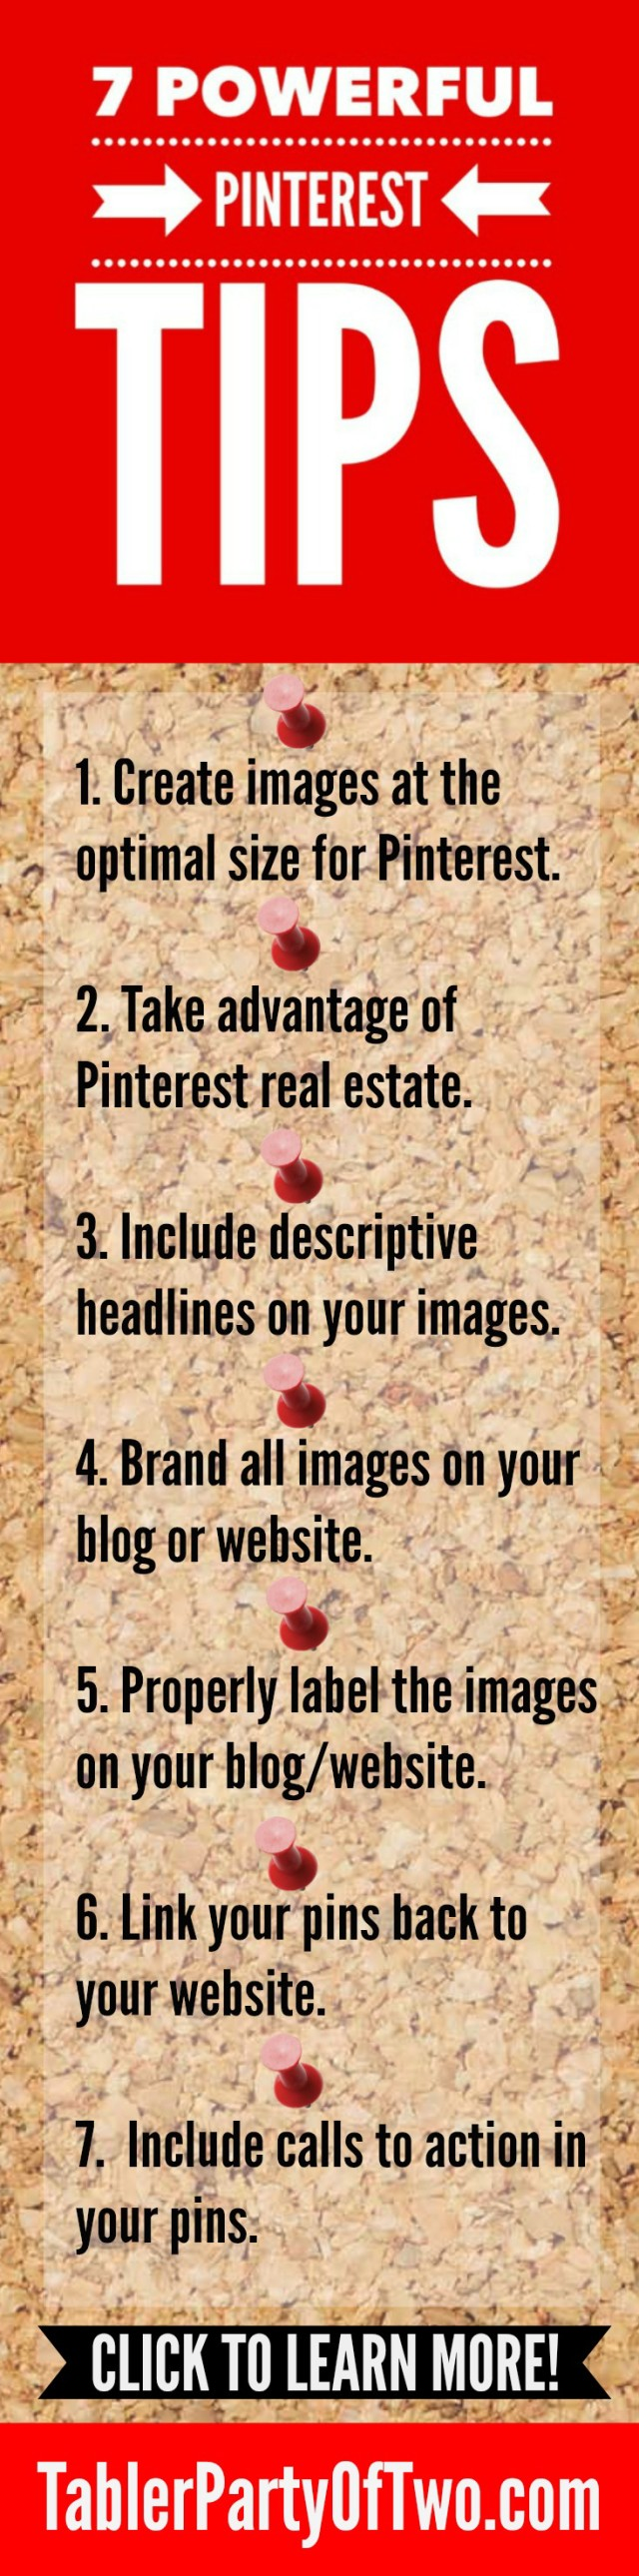 7 Powerful Pinterest Tips you should implement today! TablerPartyofTwo.com